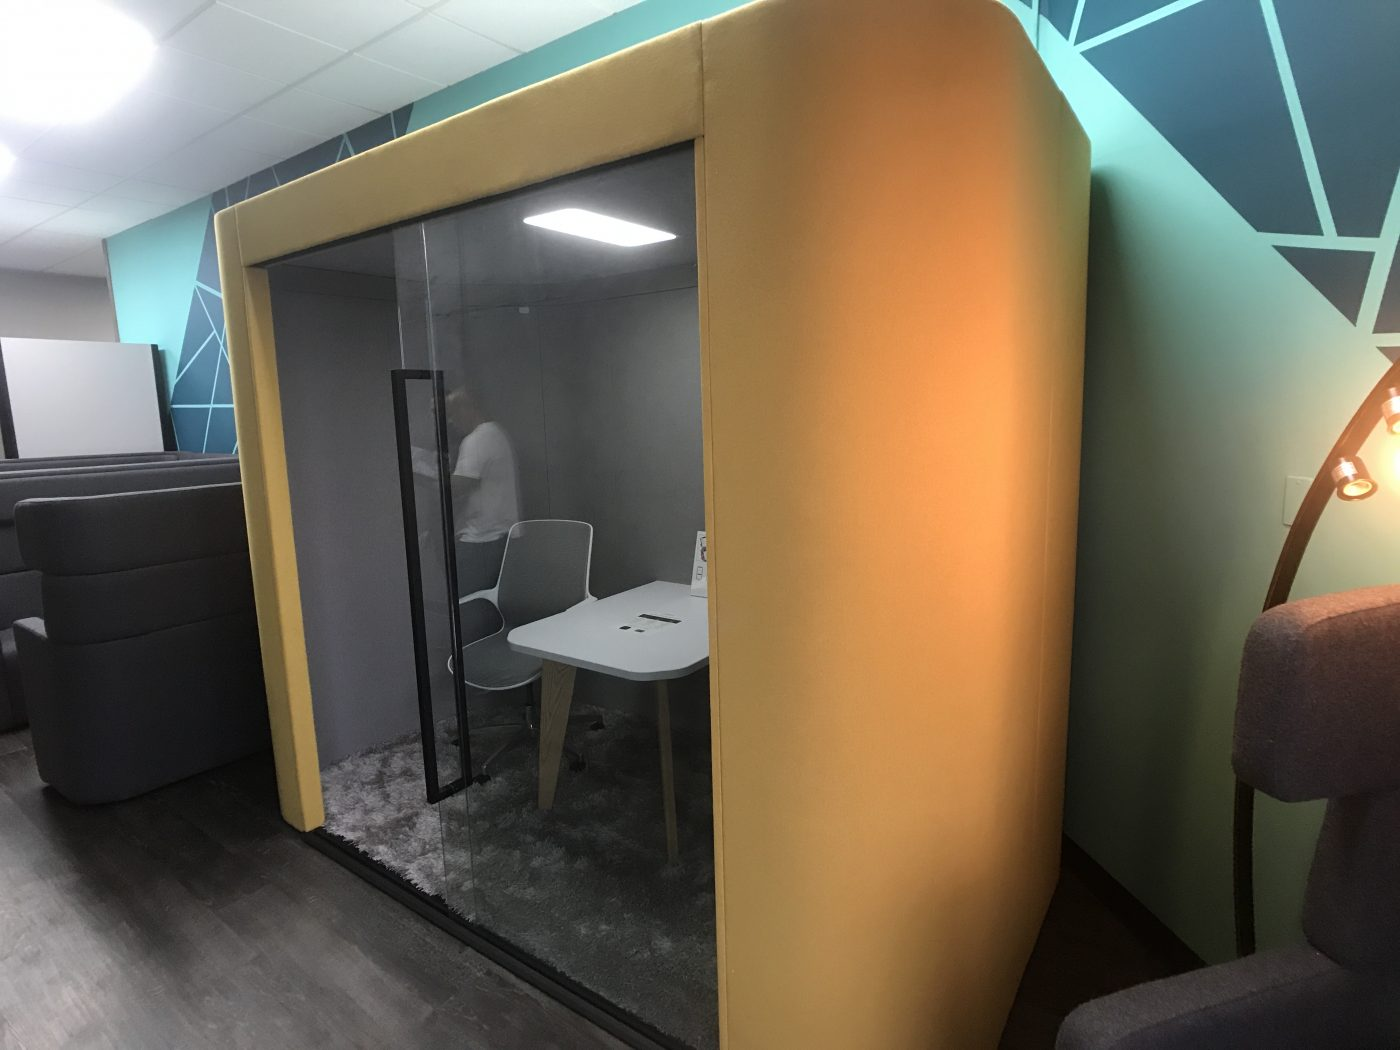 Always use an acoustic pod for confidential meetings in cowering spaces